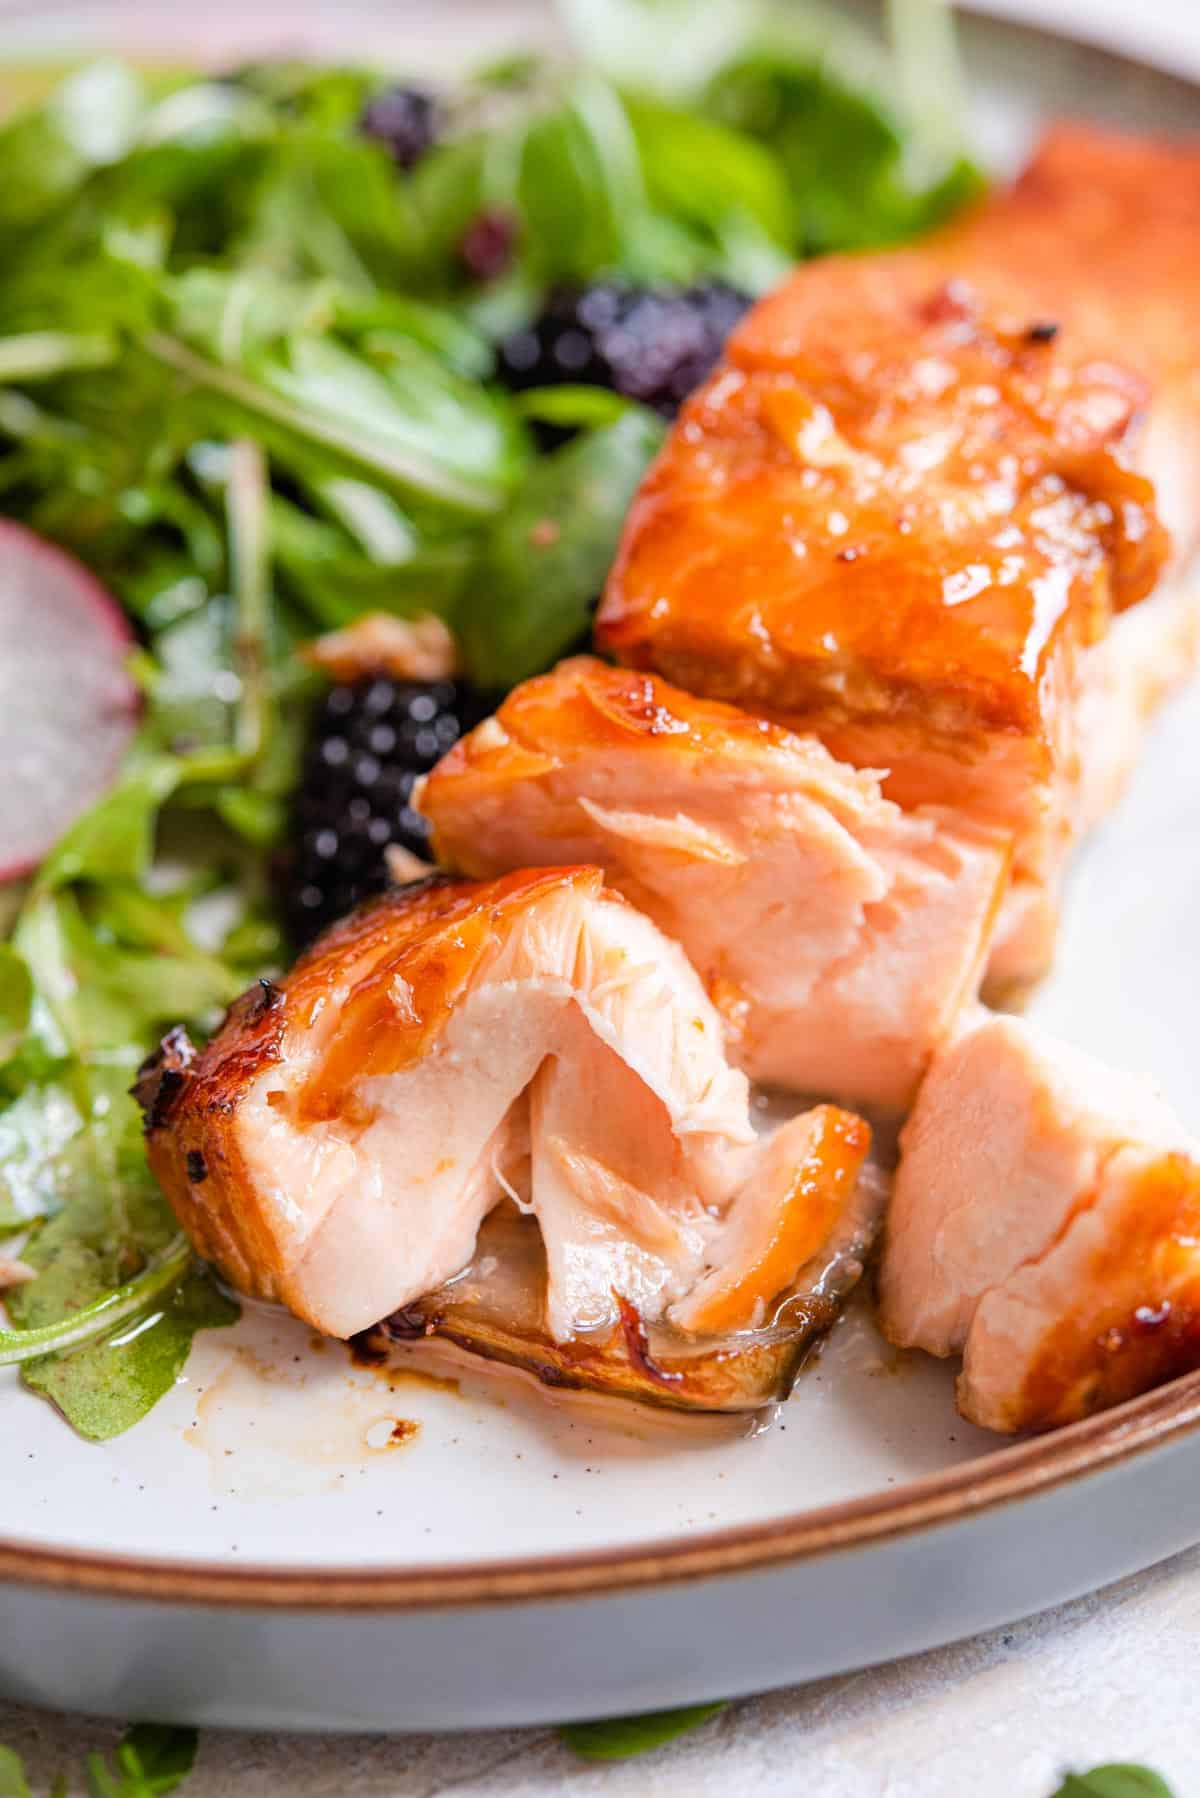 A close up of a fillet of salmon on a plate cut into with salad at the side